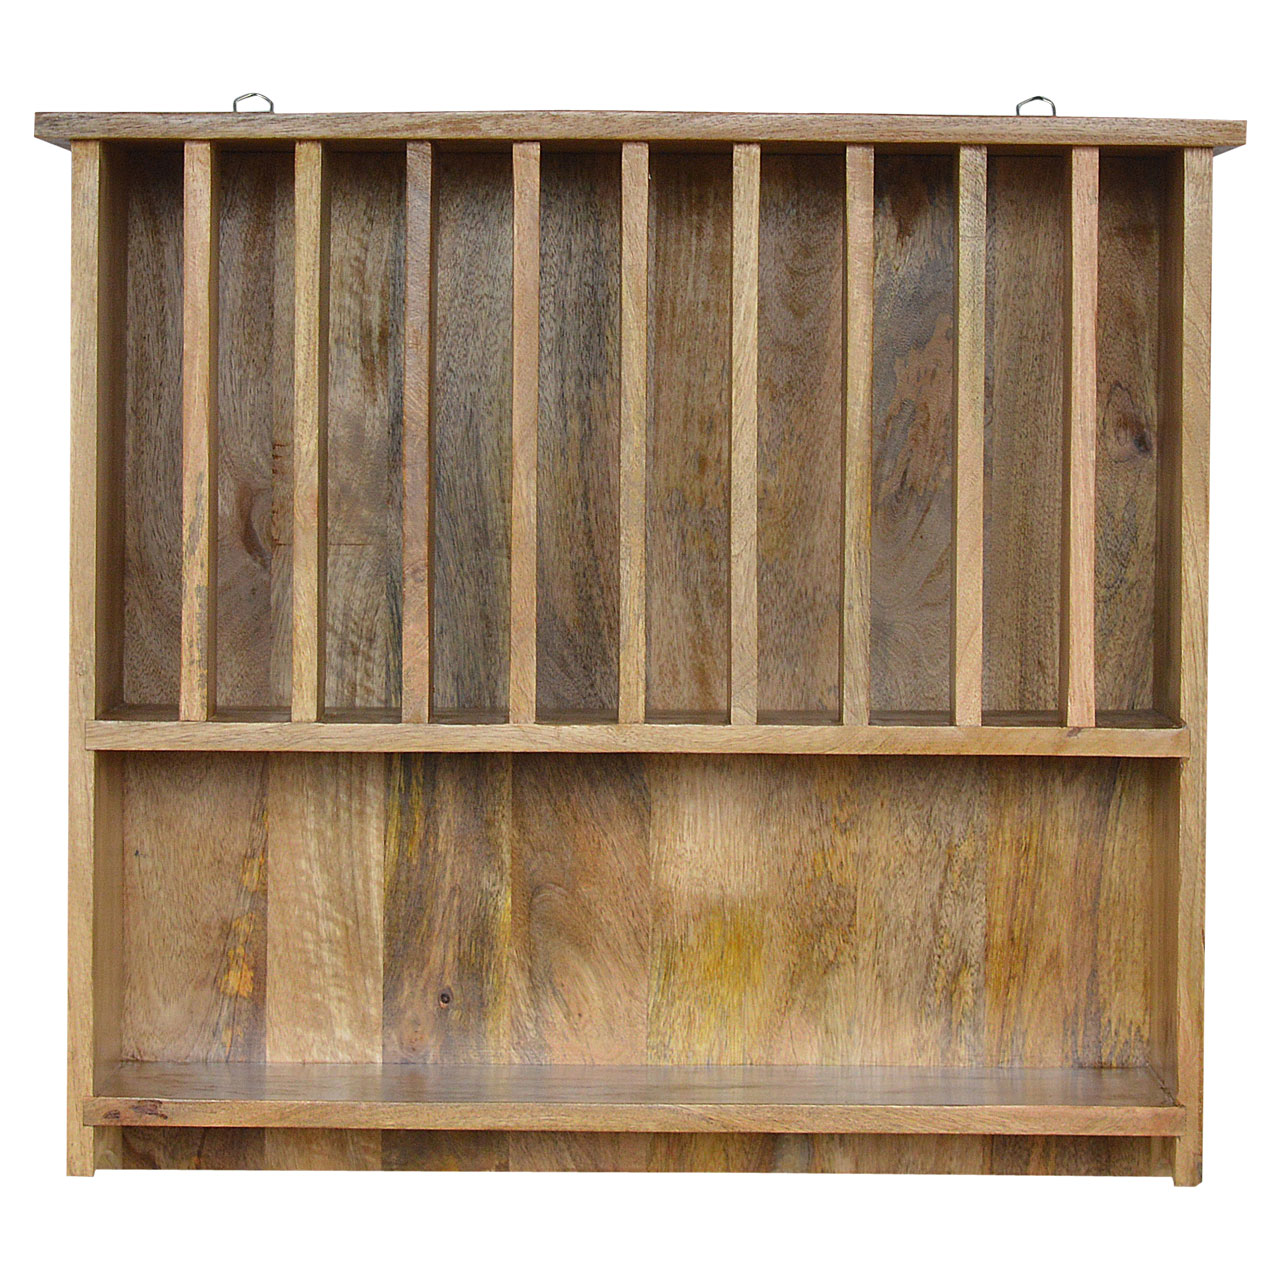 IN068 Wall Mounted Solid Wood Plate Rack